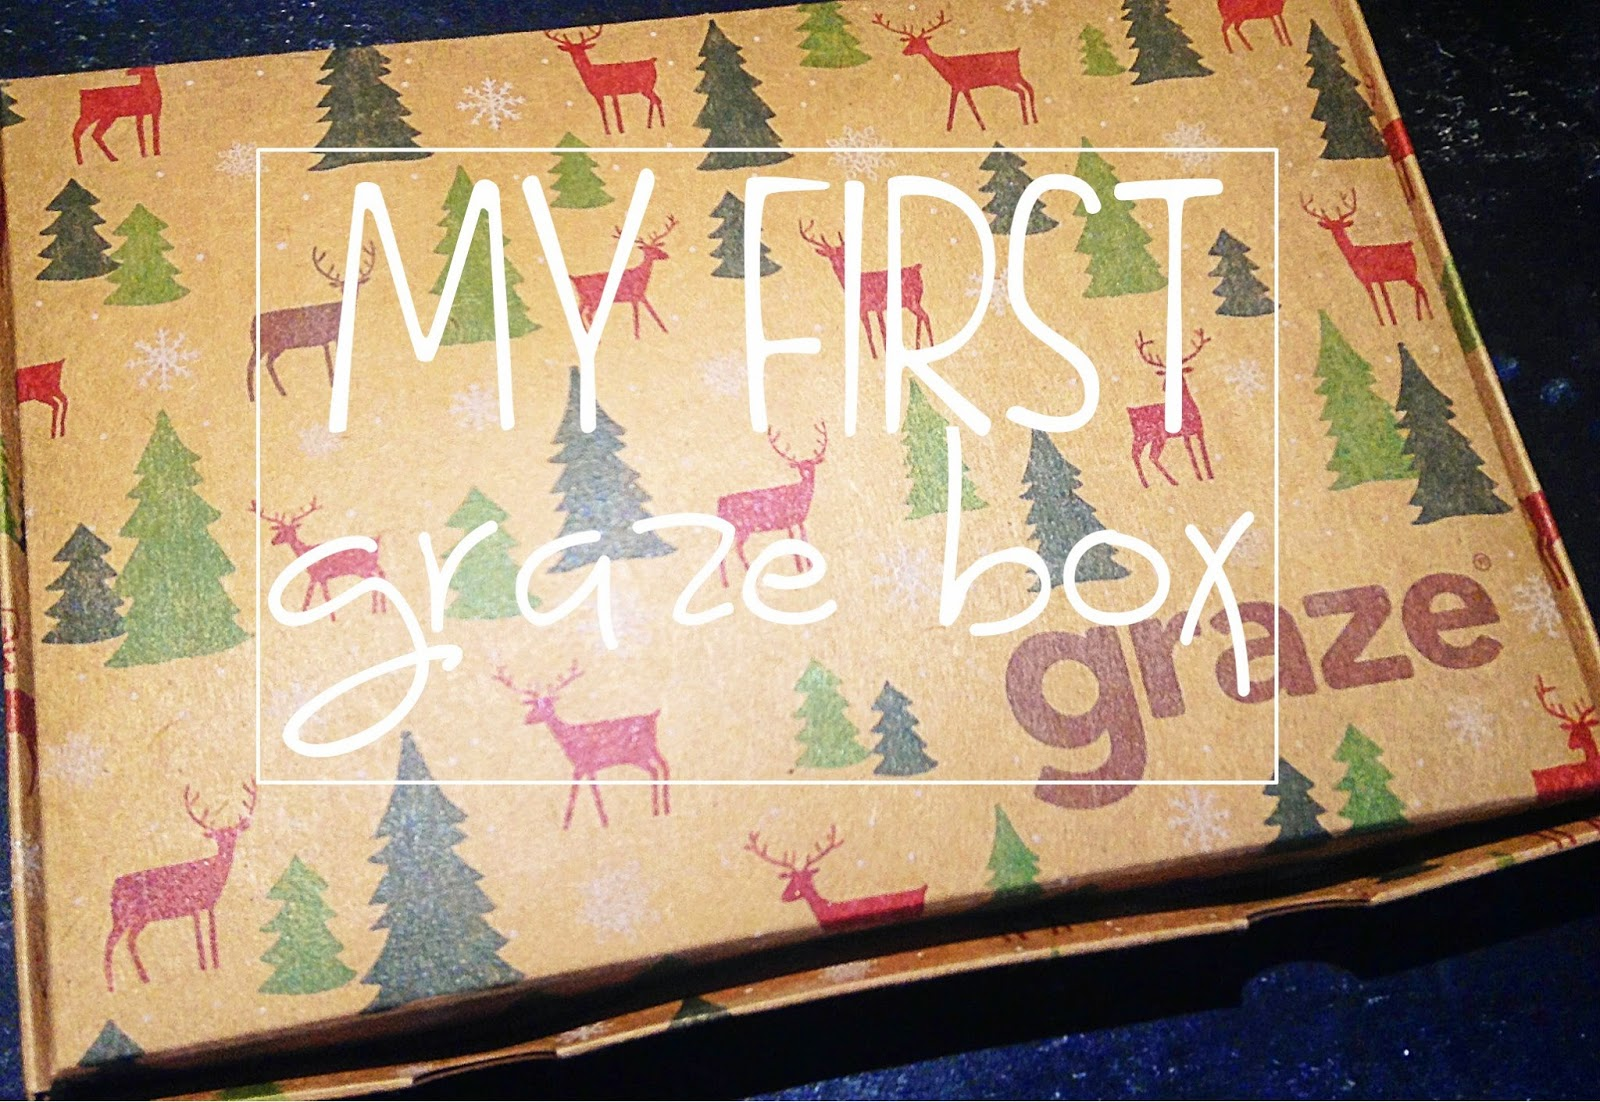 my first graze box review